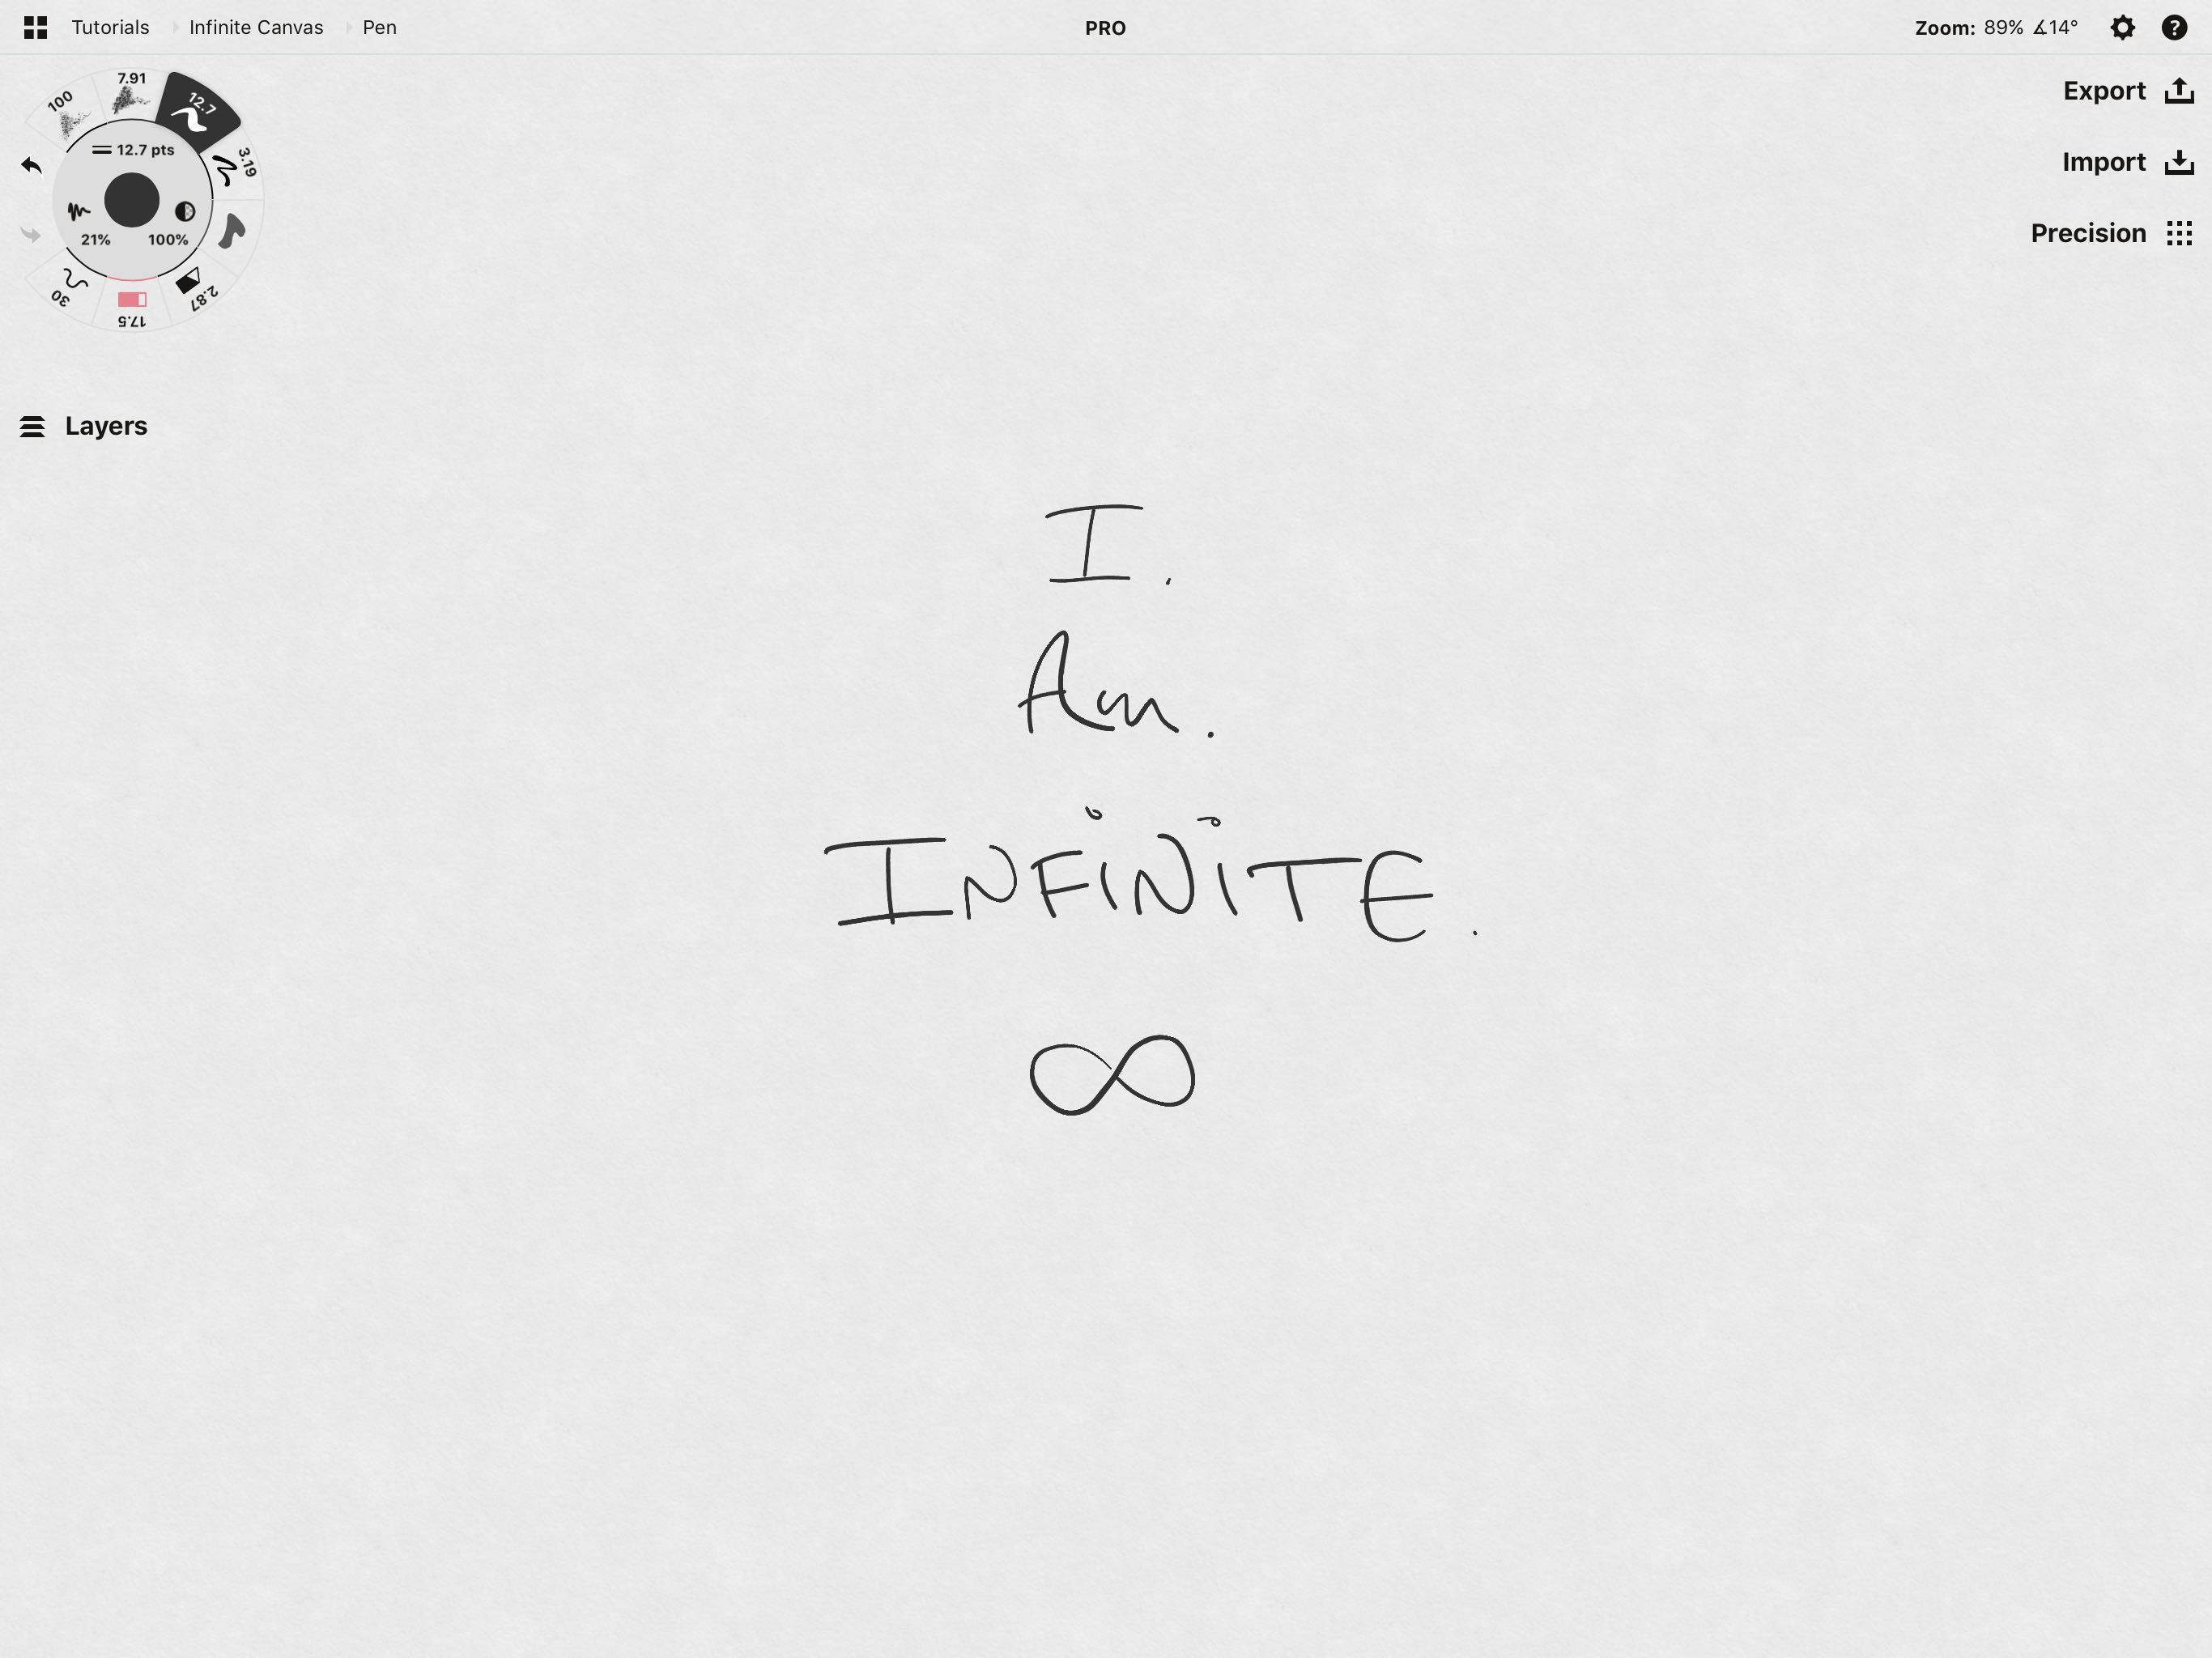 Working with Your Infinite Canvas • Concepts App • Infinite